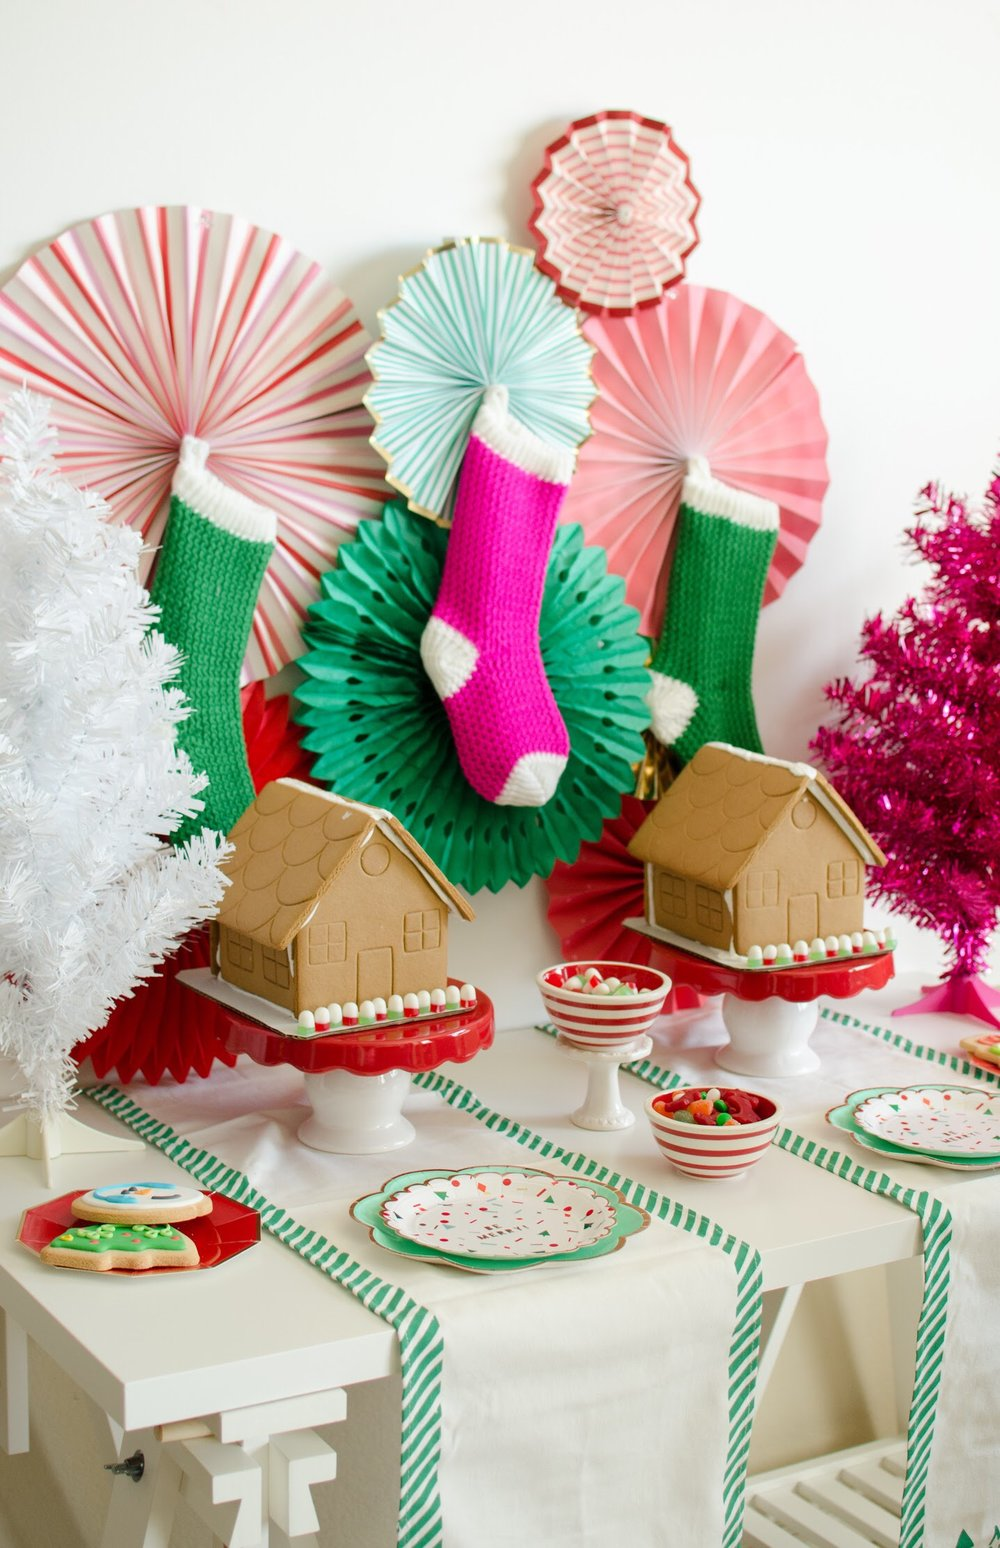 The candy is the star of the show at this gingerbread house party. See the full decorating details and party set up design on Mint Event Design www.minteventdesign.com #gingerbreadhouse #holidayparty #holidays #partyideas #christmasparty #holidaypartyideas #kidsparty